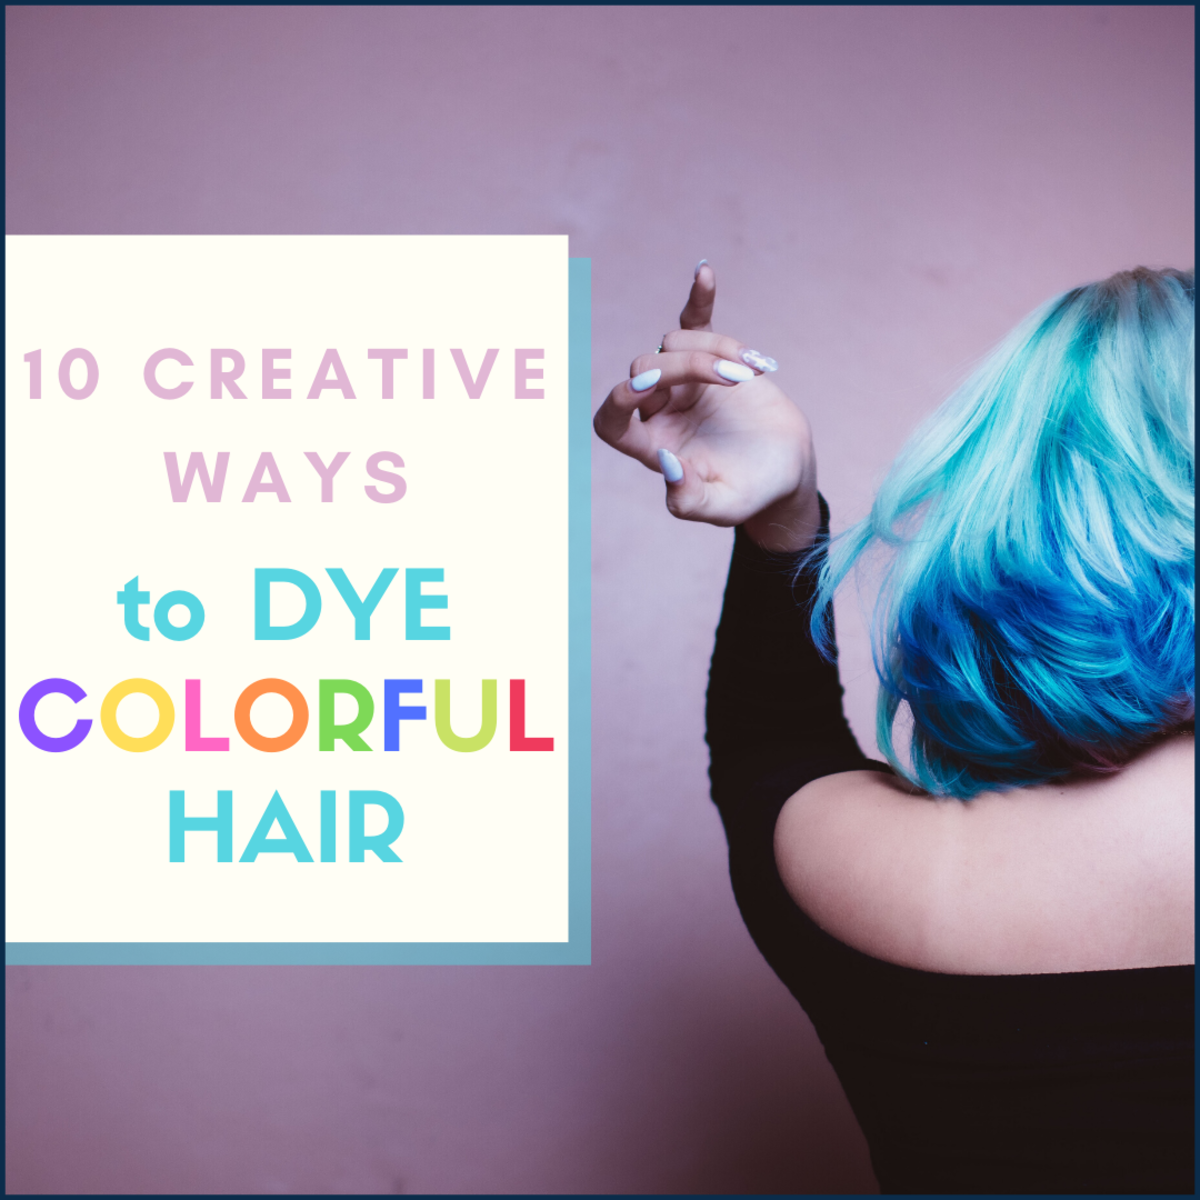 There are so many great ways to dye hair. Here are 10 of my favorites!